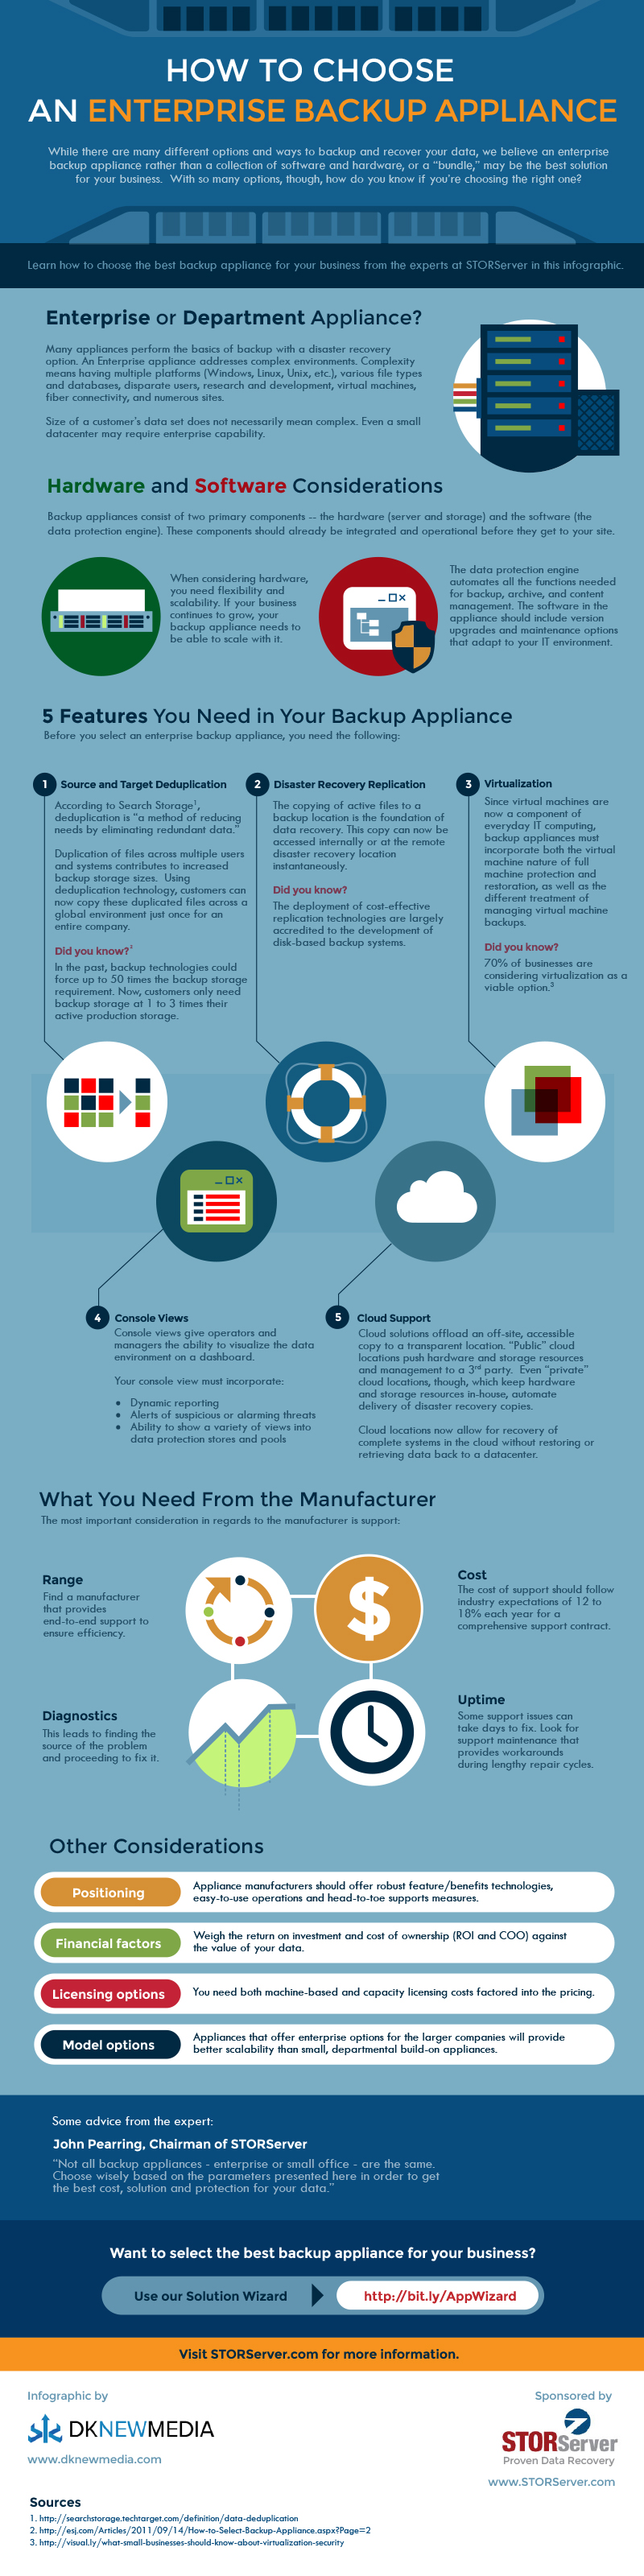 How to Choose an Enterprise Backup Appliance Guide Infographic